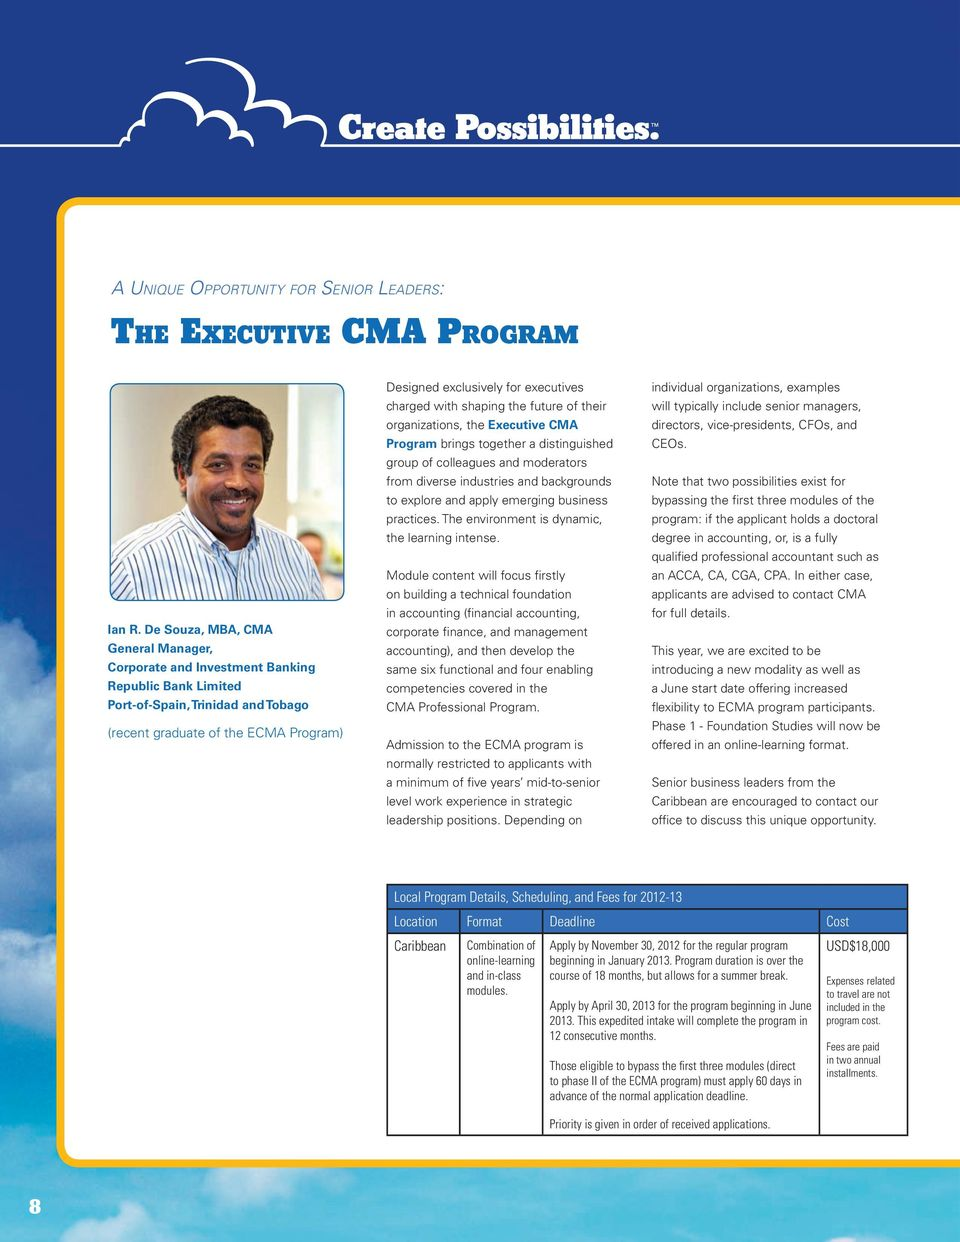 charged with shaping the future of their organizations, the Executive CMA Program brings together a distinguished group of colleagues and moderators from diverse industries and backgrounds to explore